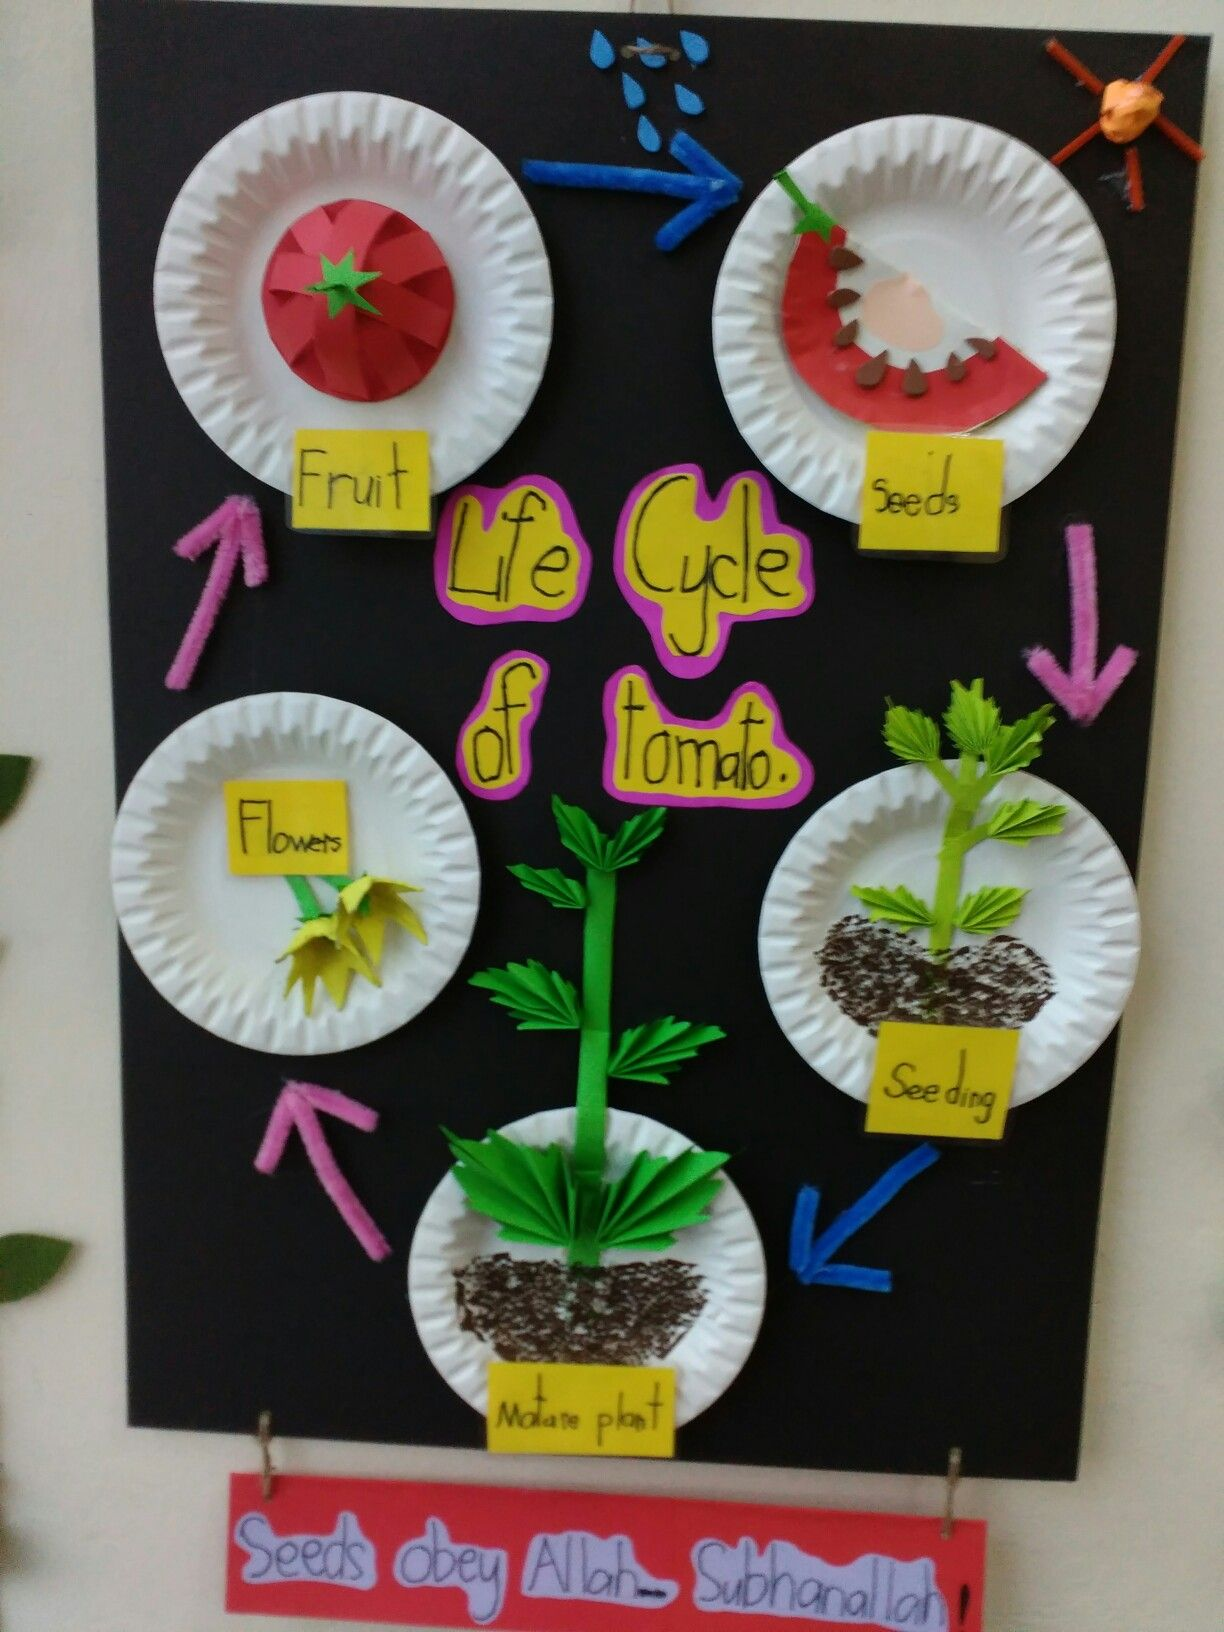 Life Cycle Of Tomato By Teacher Ina